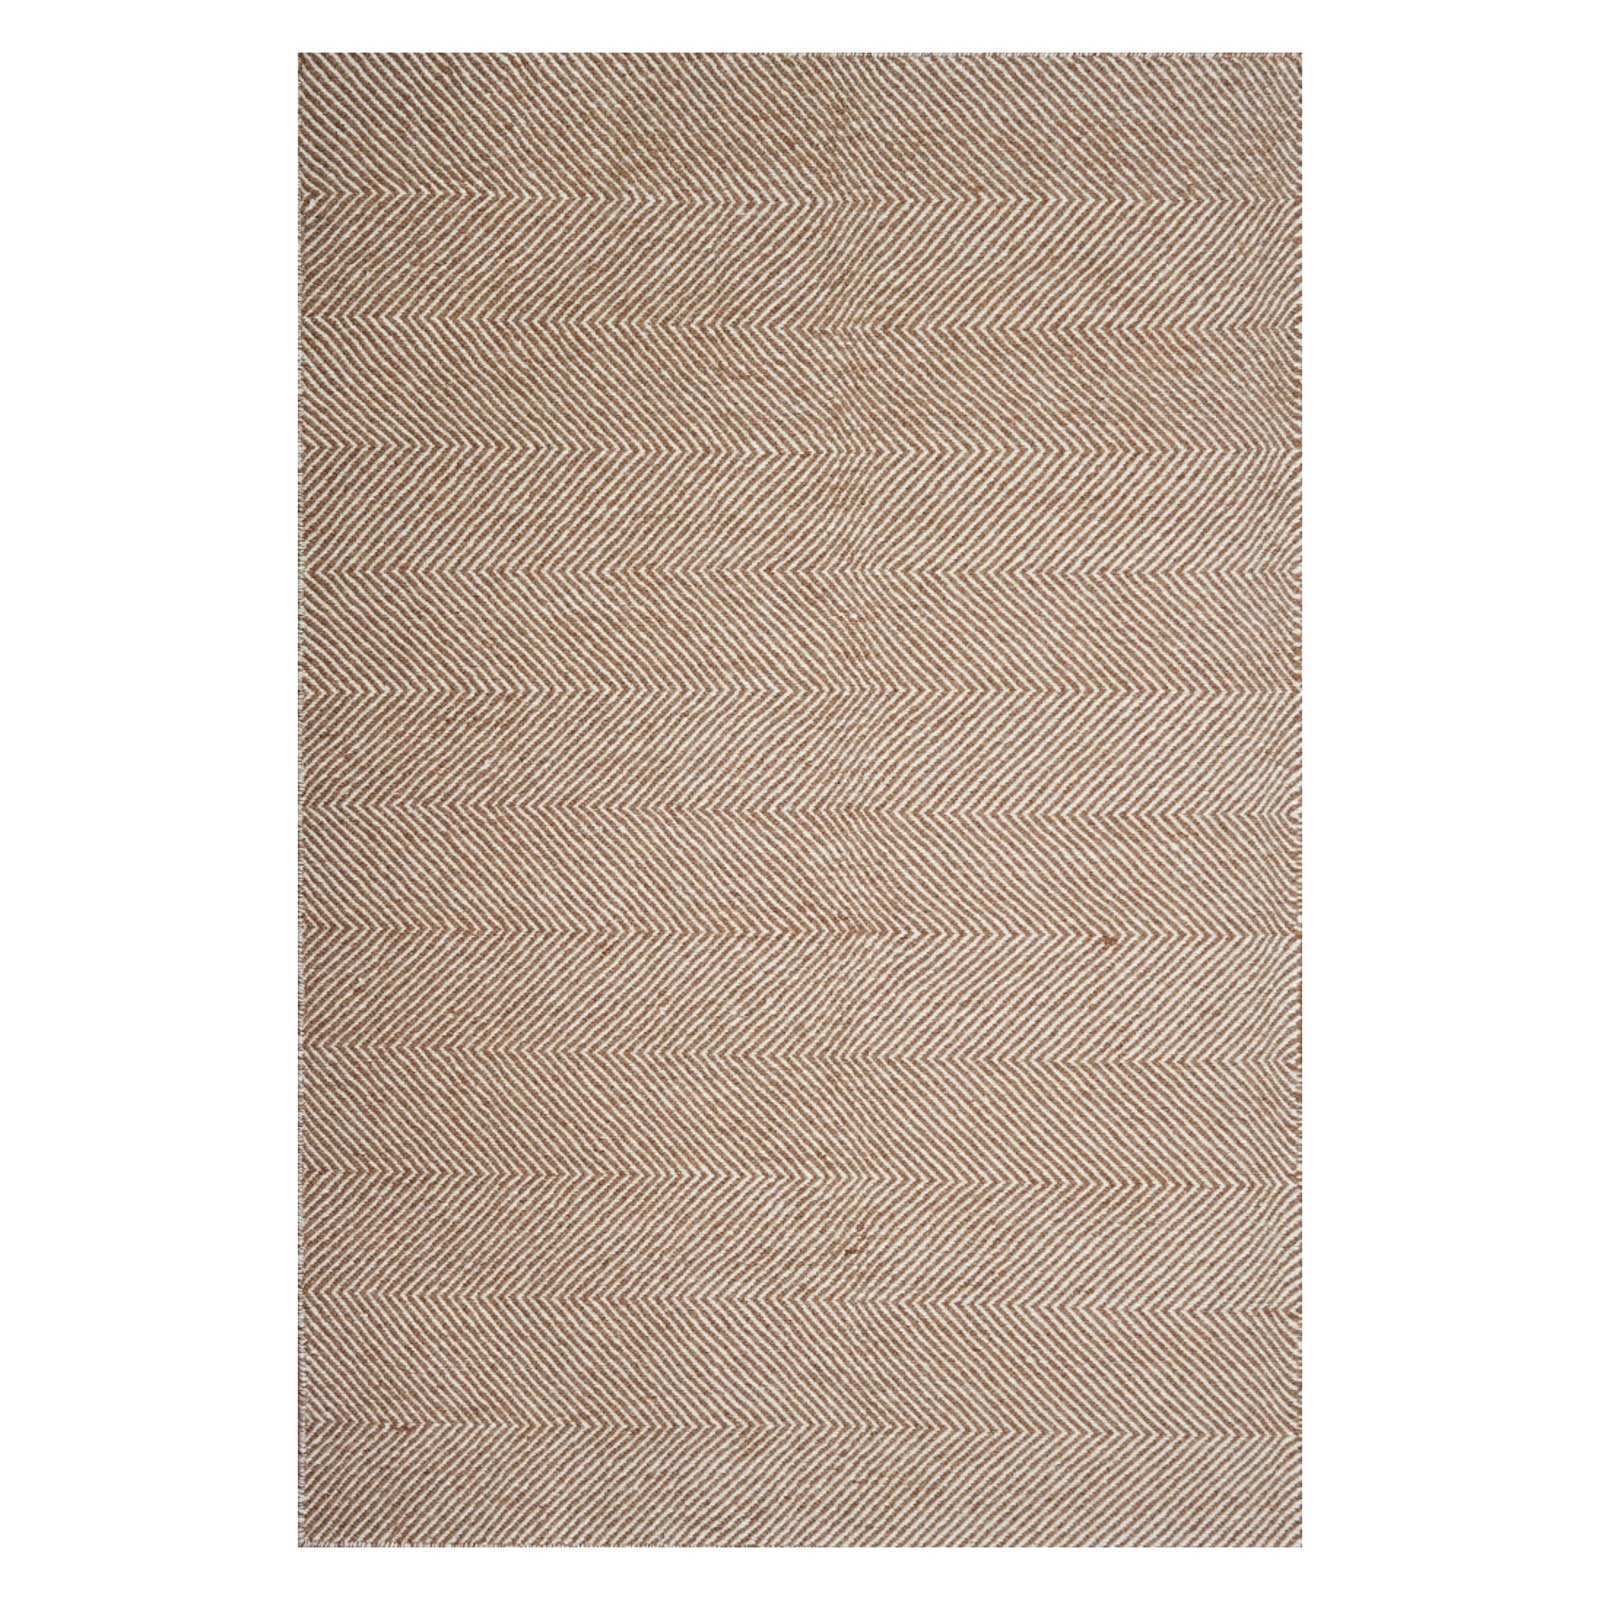 Flatweave Chevron Rugs in Brown and Ivory